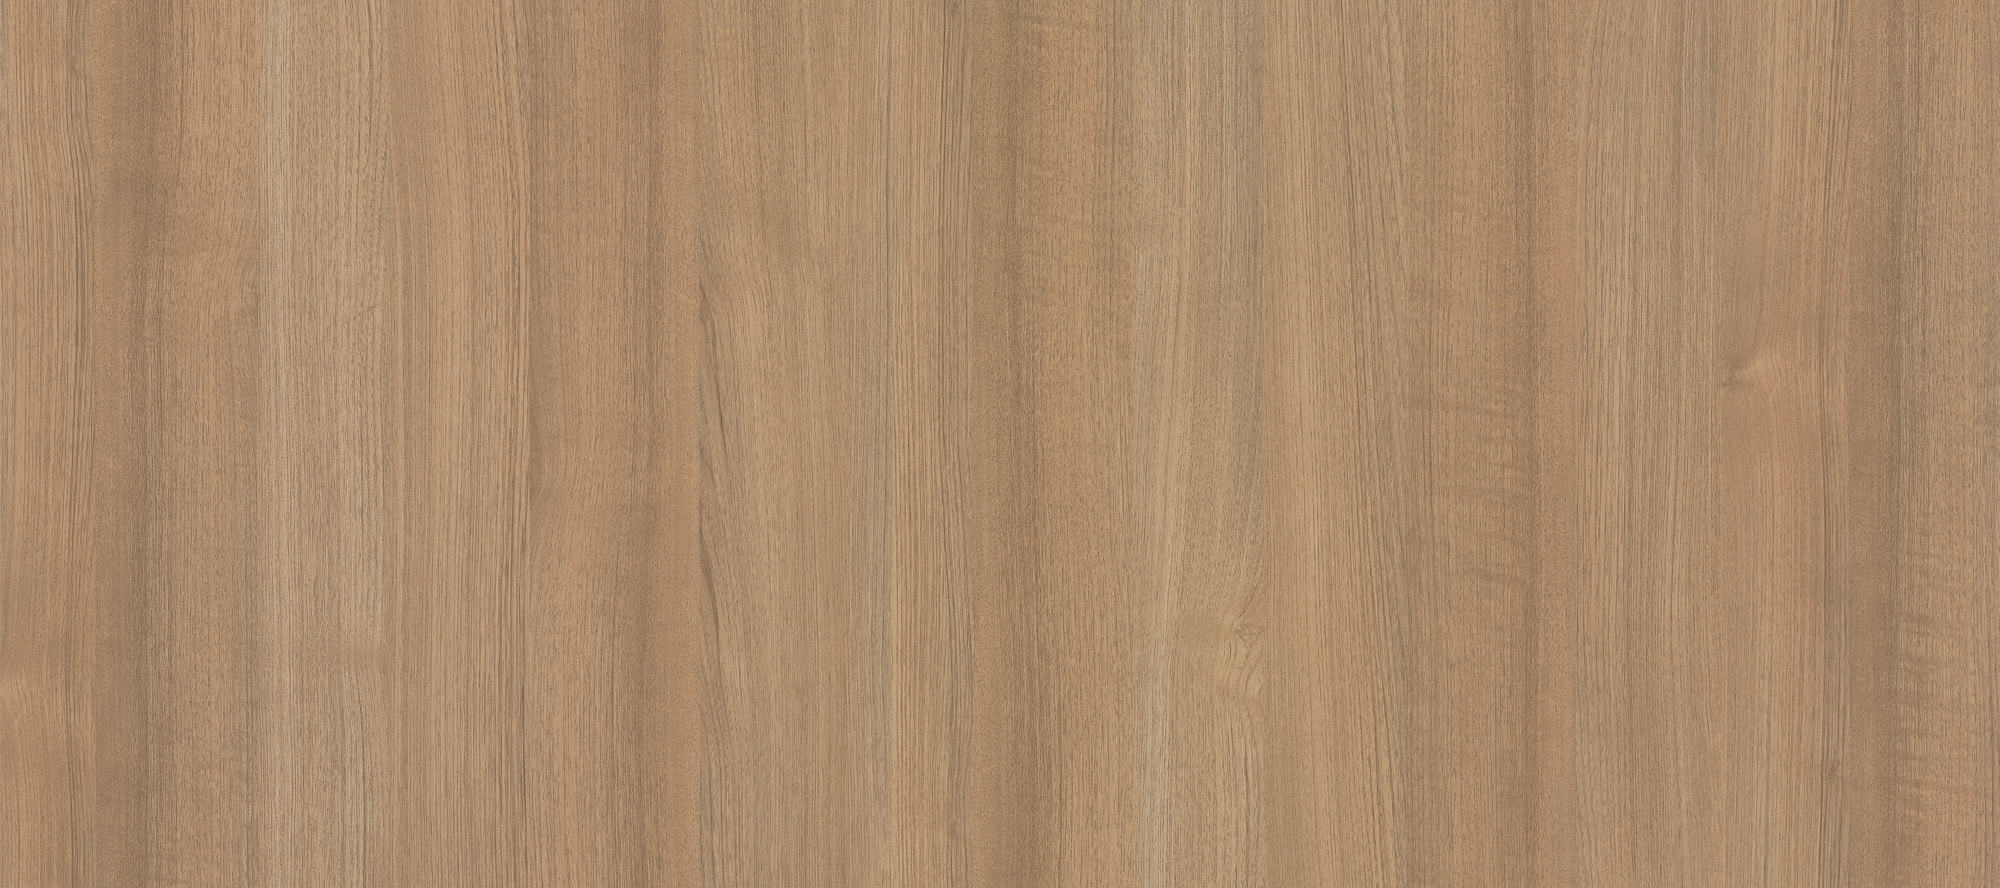 North Supreme, South Supreme Wooden Laminate Texture-Sundek International